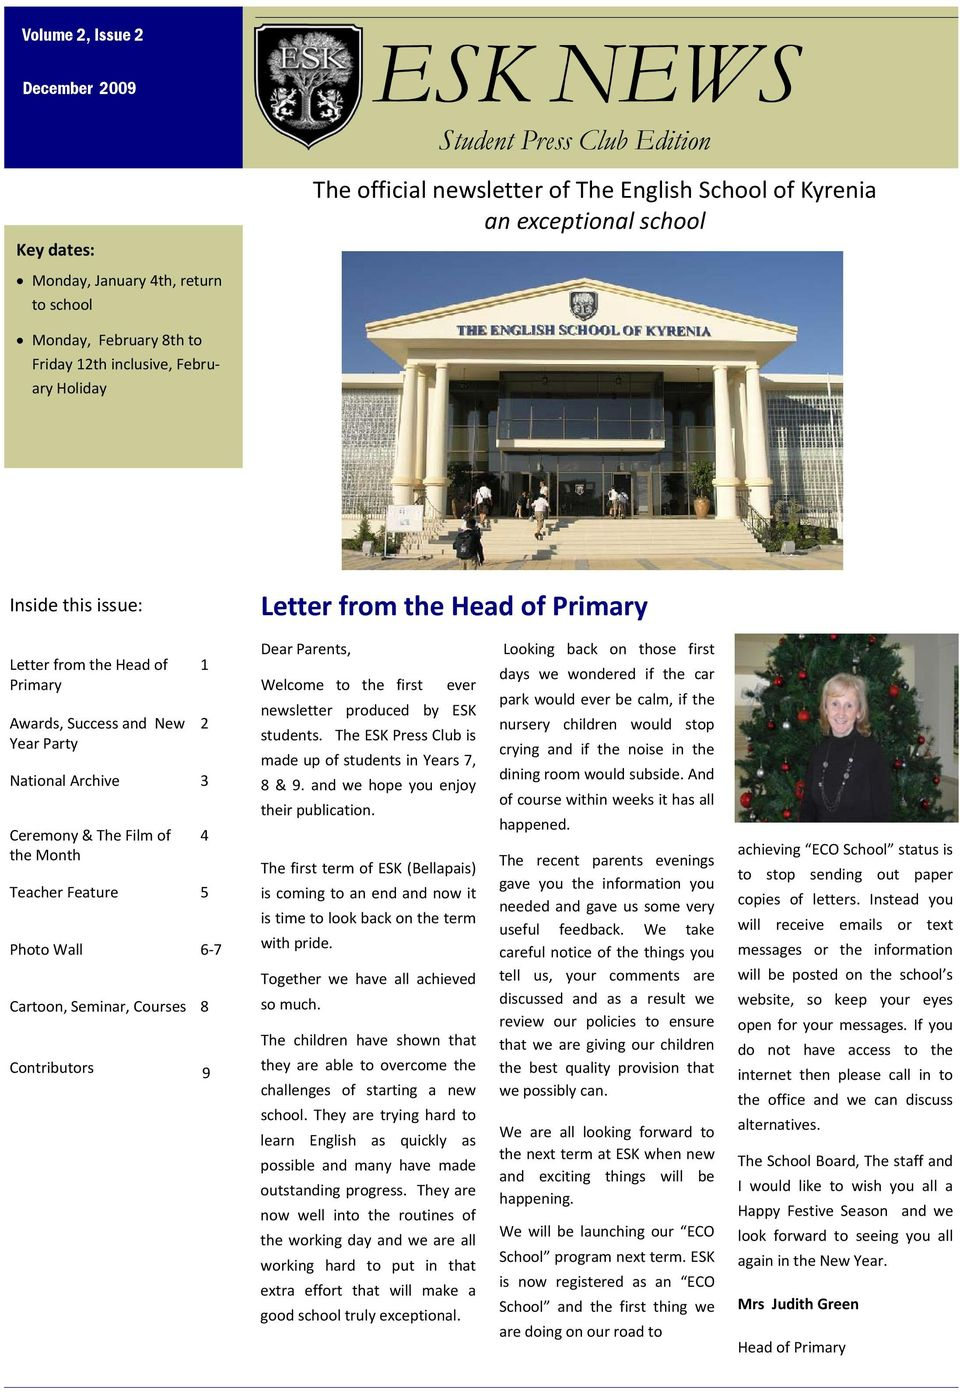 3 Ceremony & The Film of the Month Teacher Feature 5 Photo Wall 6 7 Cartoon, Seminar, Courses 8 Contributors 9 1 2 4 Dear Parents, Welcome to the first ever newsletter produced by ESK students.